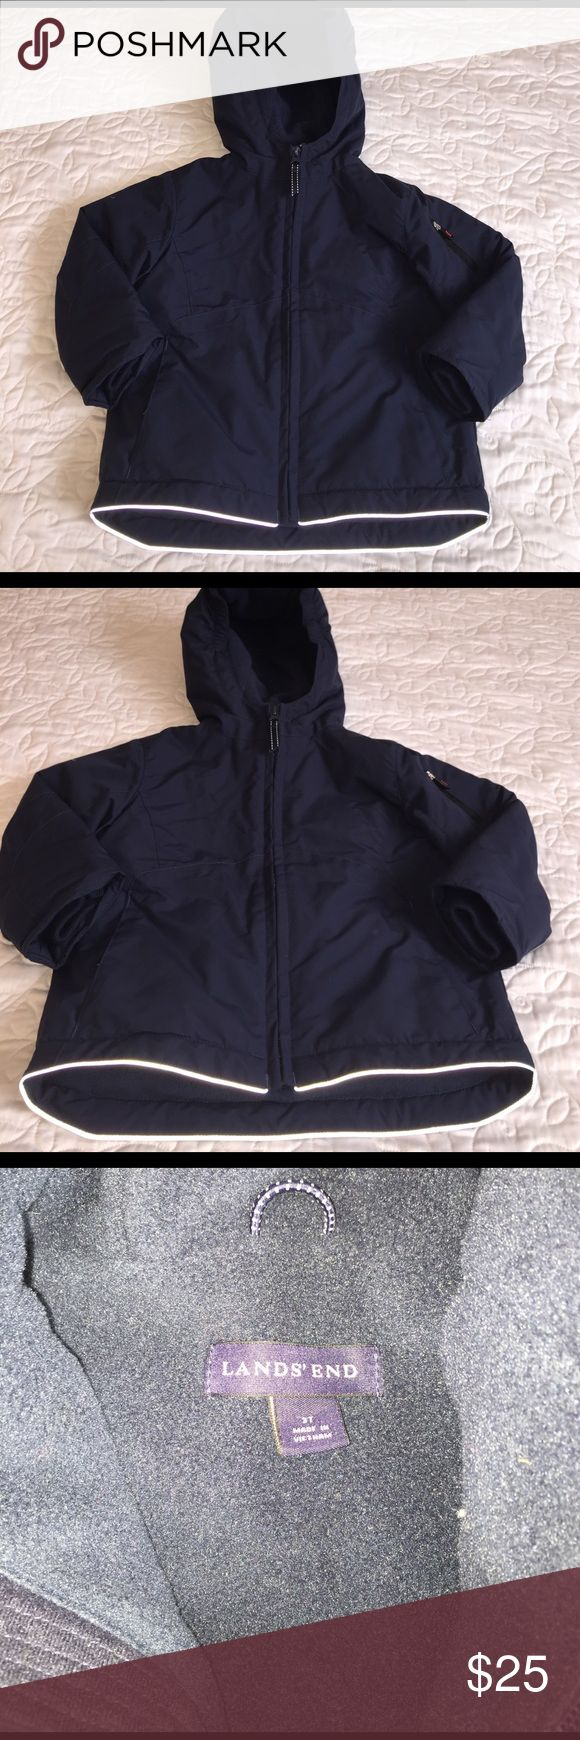 Lands end Kids windbreaker Mint condition no stains or tears Lands' End Jackets & Coats